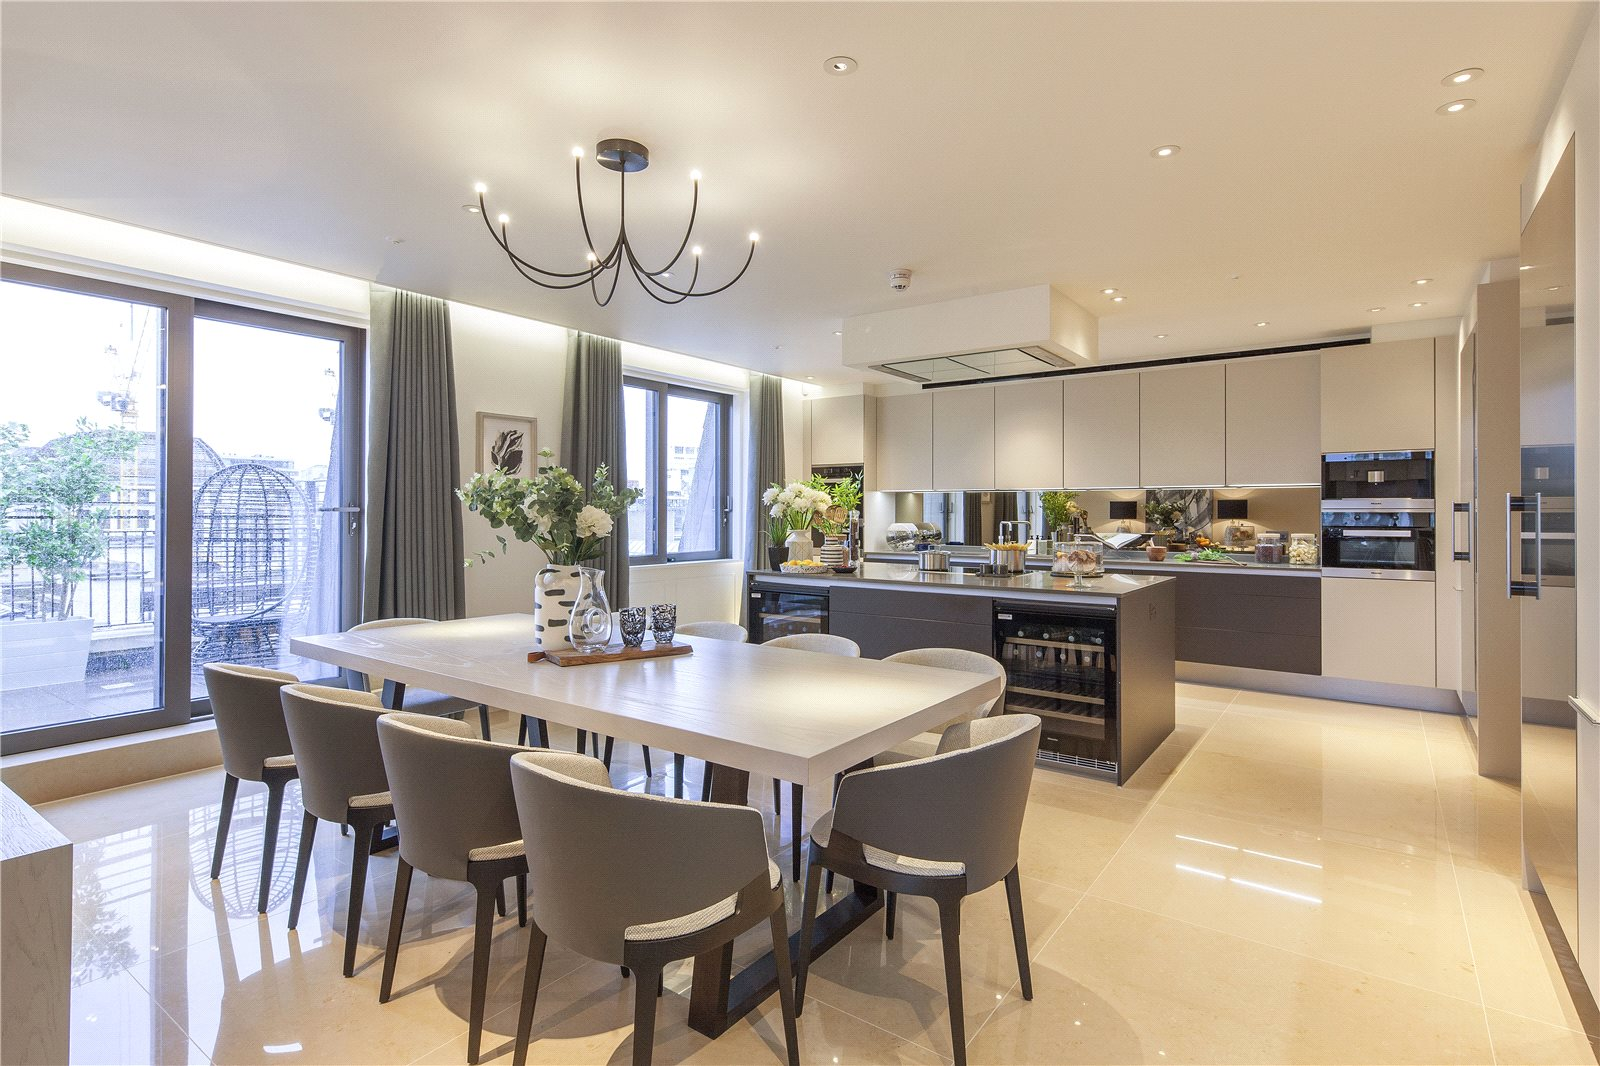 London - Real Estate and Apartments for Sale | Christie's ...